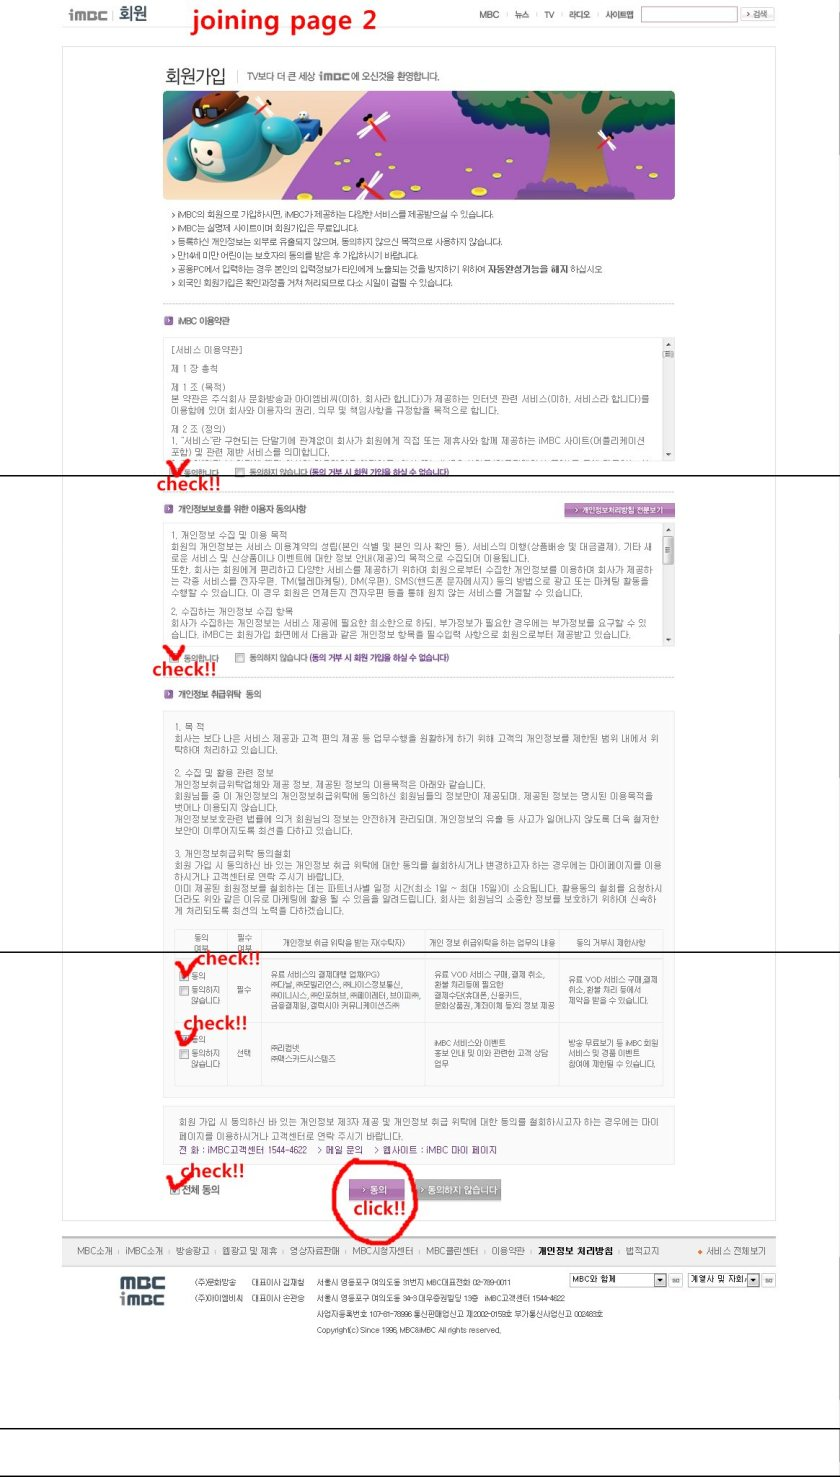 Tutorial] How to register at MBC's website (for foreign fans